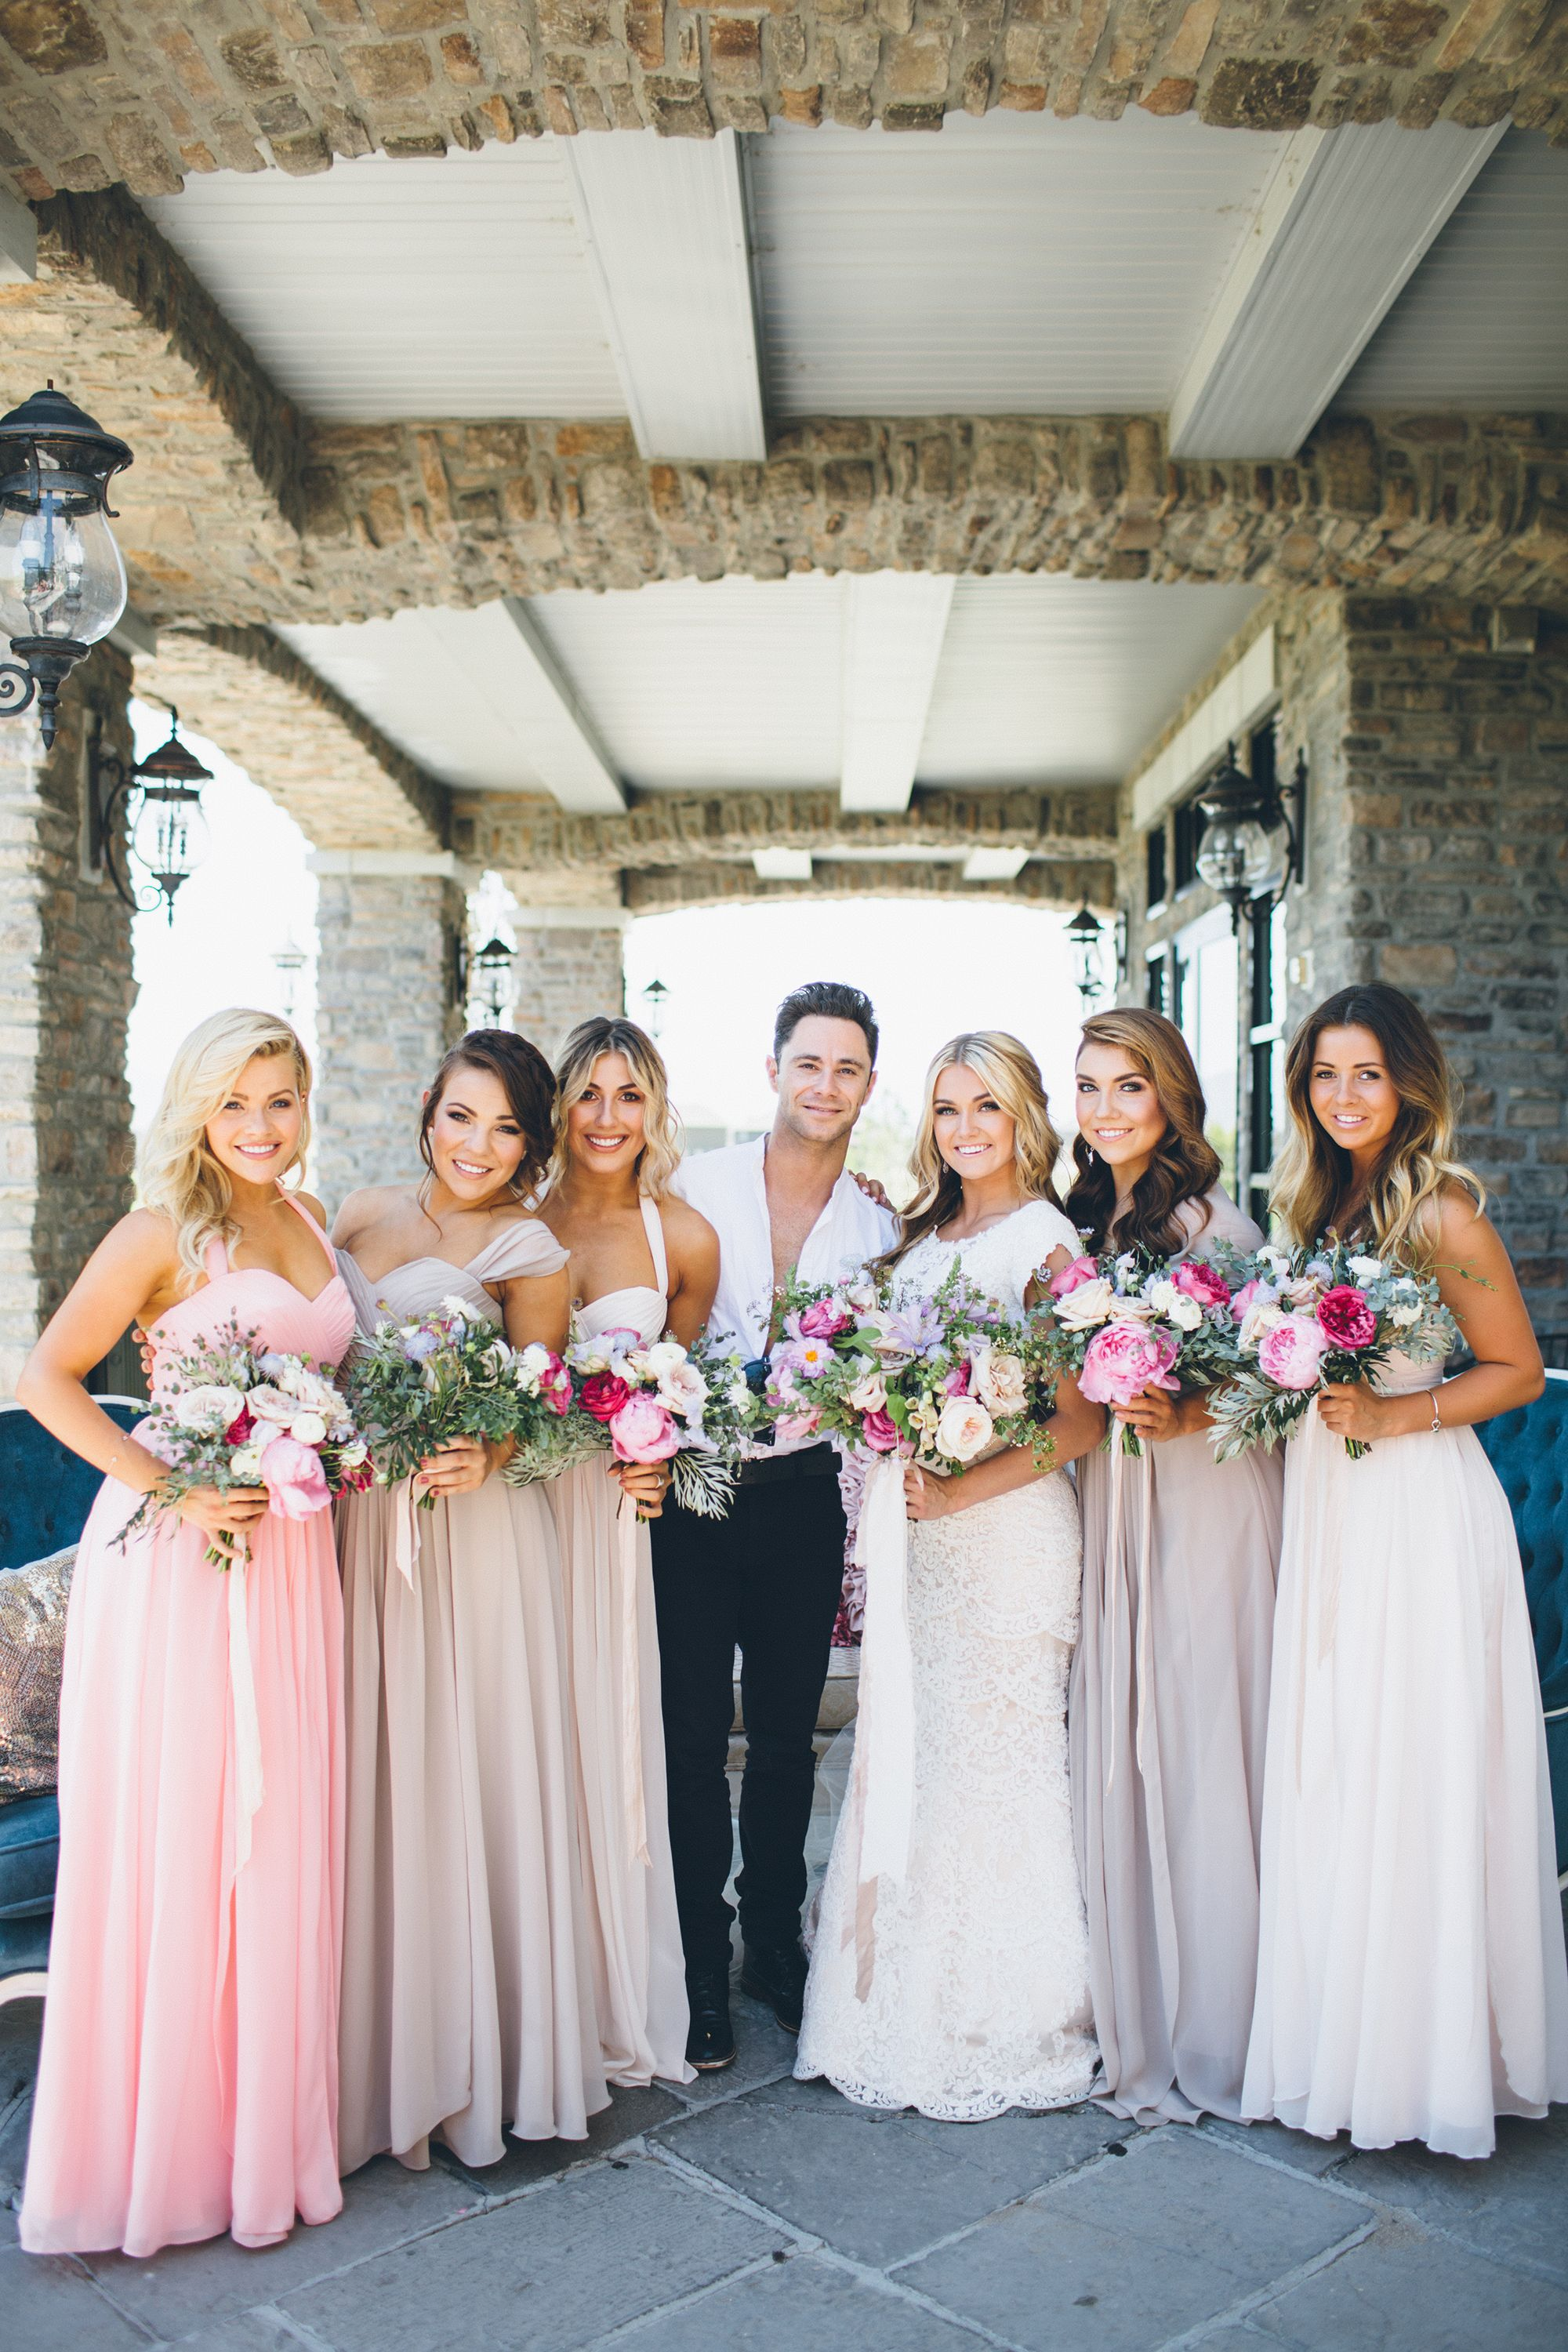 Lindsay arnold wedding dancing with the stars bridal party lindsay arnold wedding dancing with the stars bridal party blush bridesmaid dresses ombrellifo Choice Image